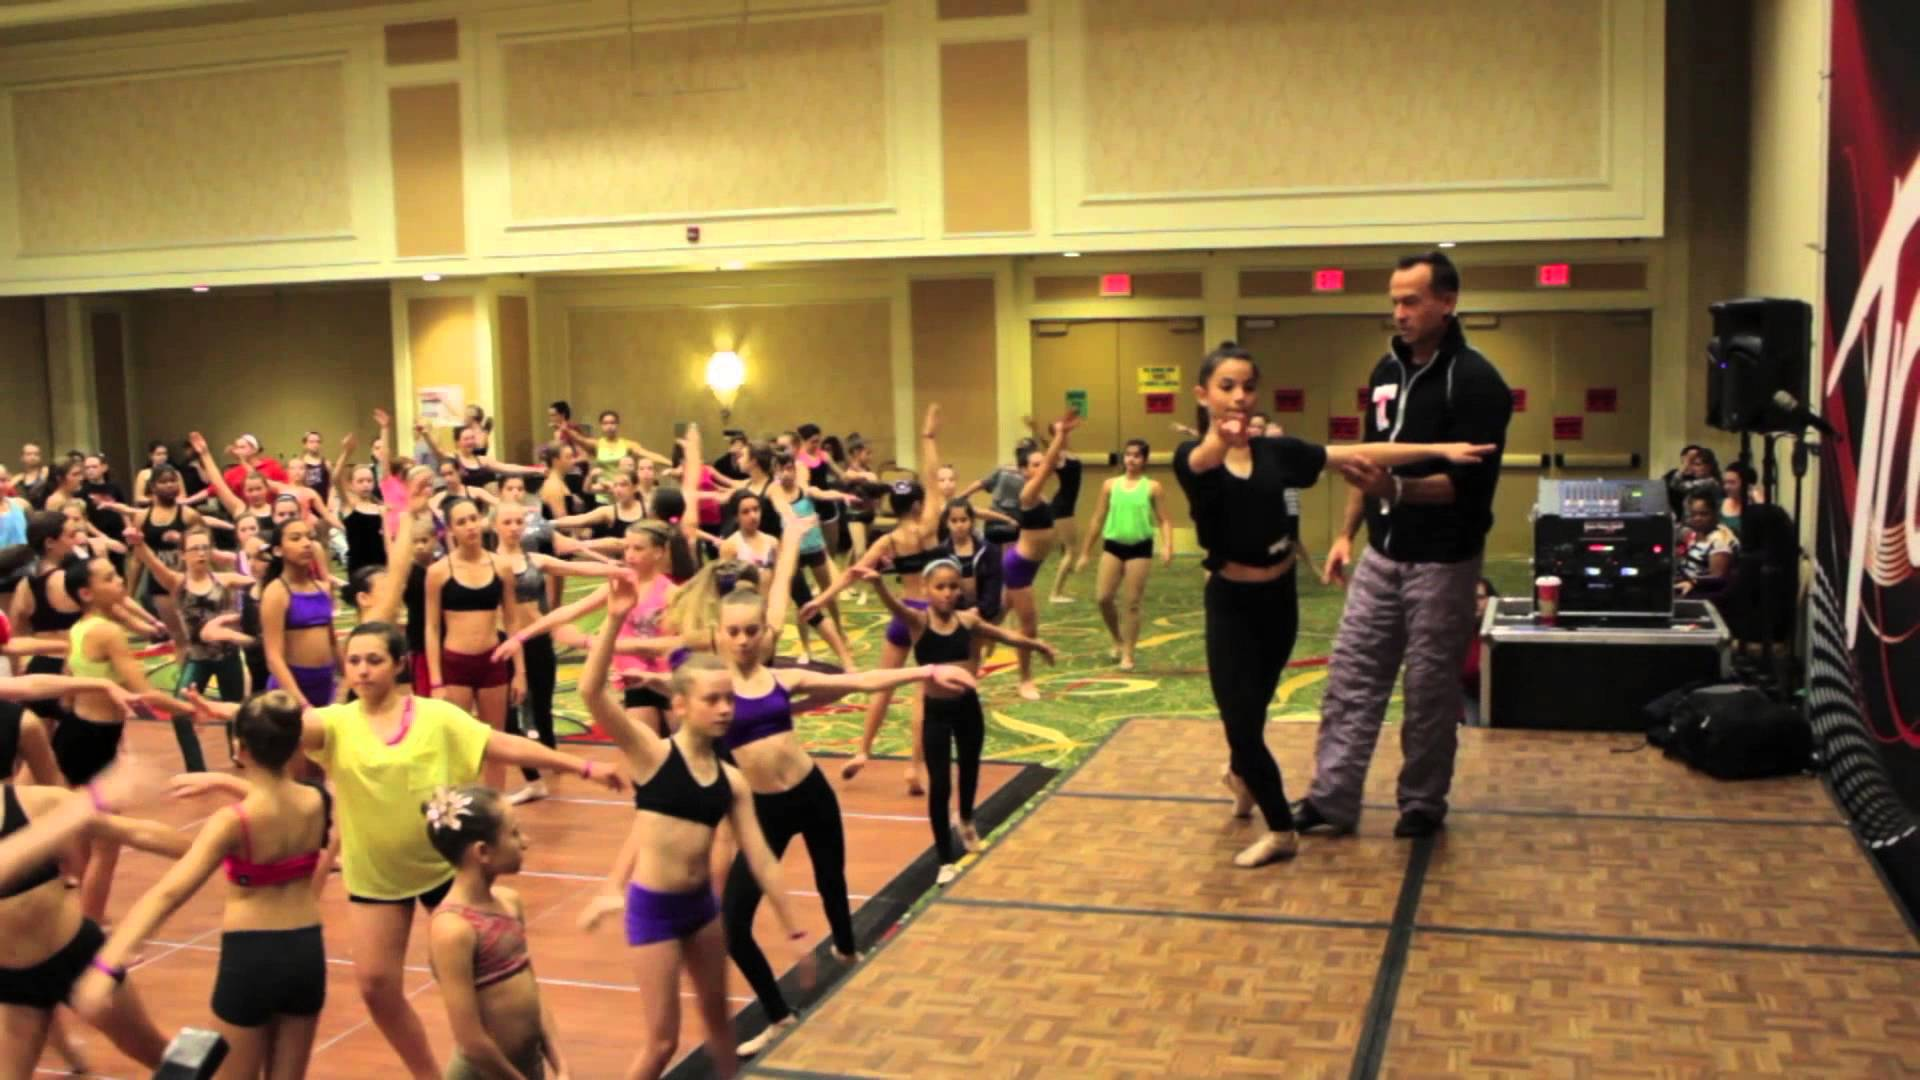 All About Dance Conventions Atomic Ballroom Irvine Ca